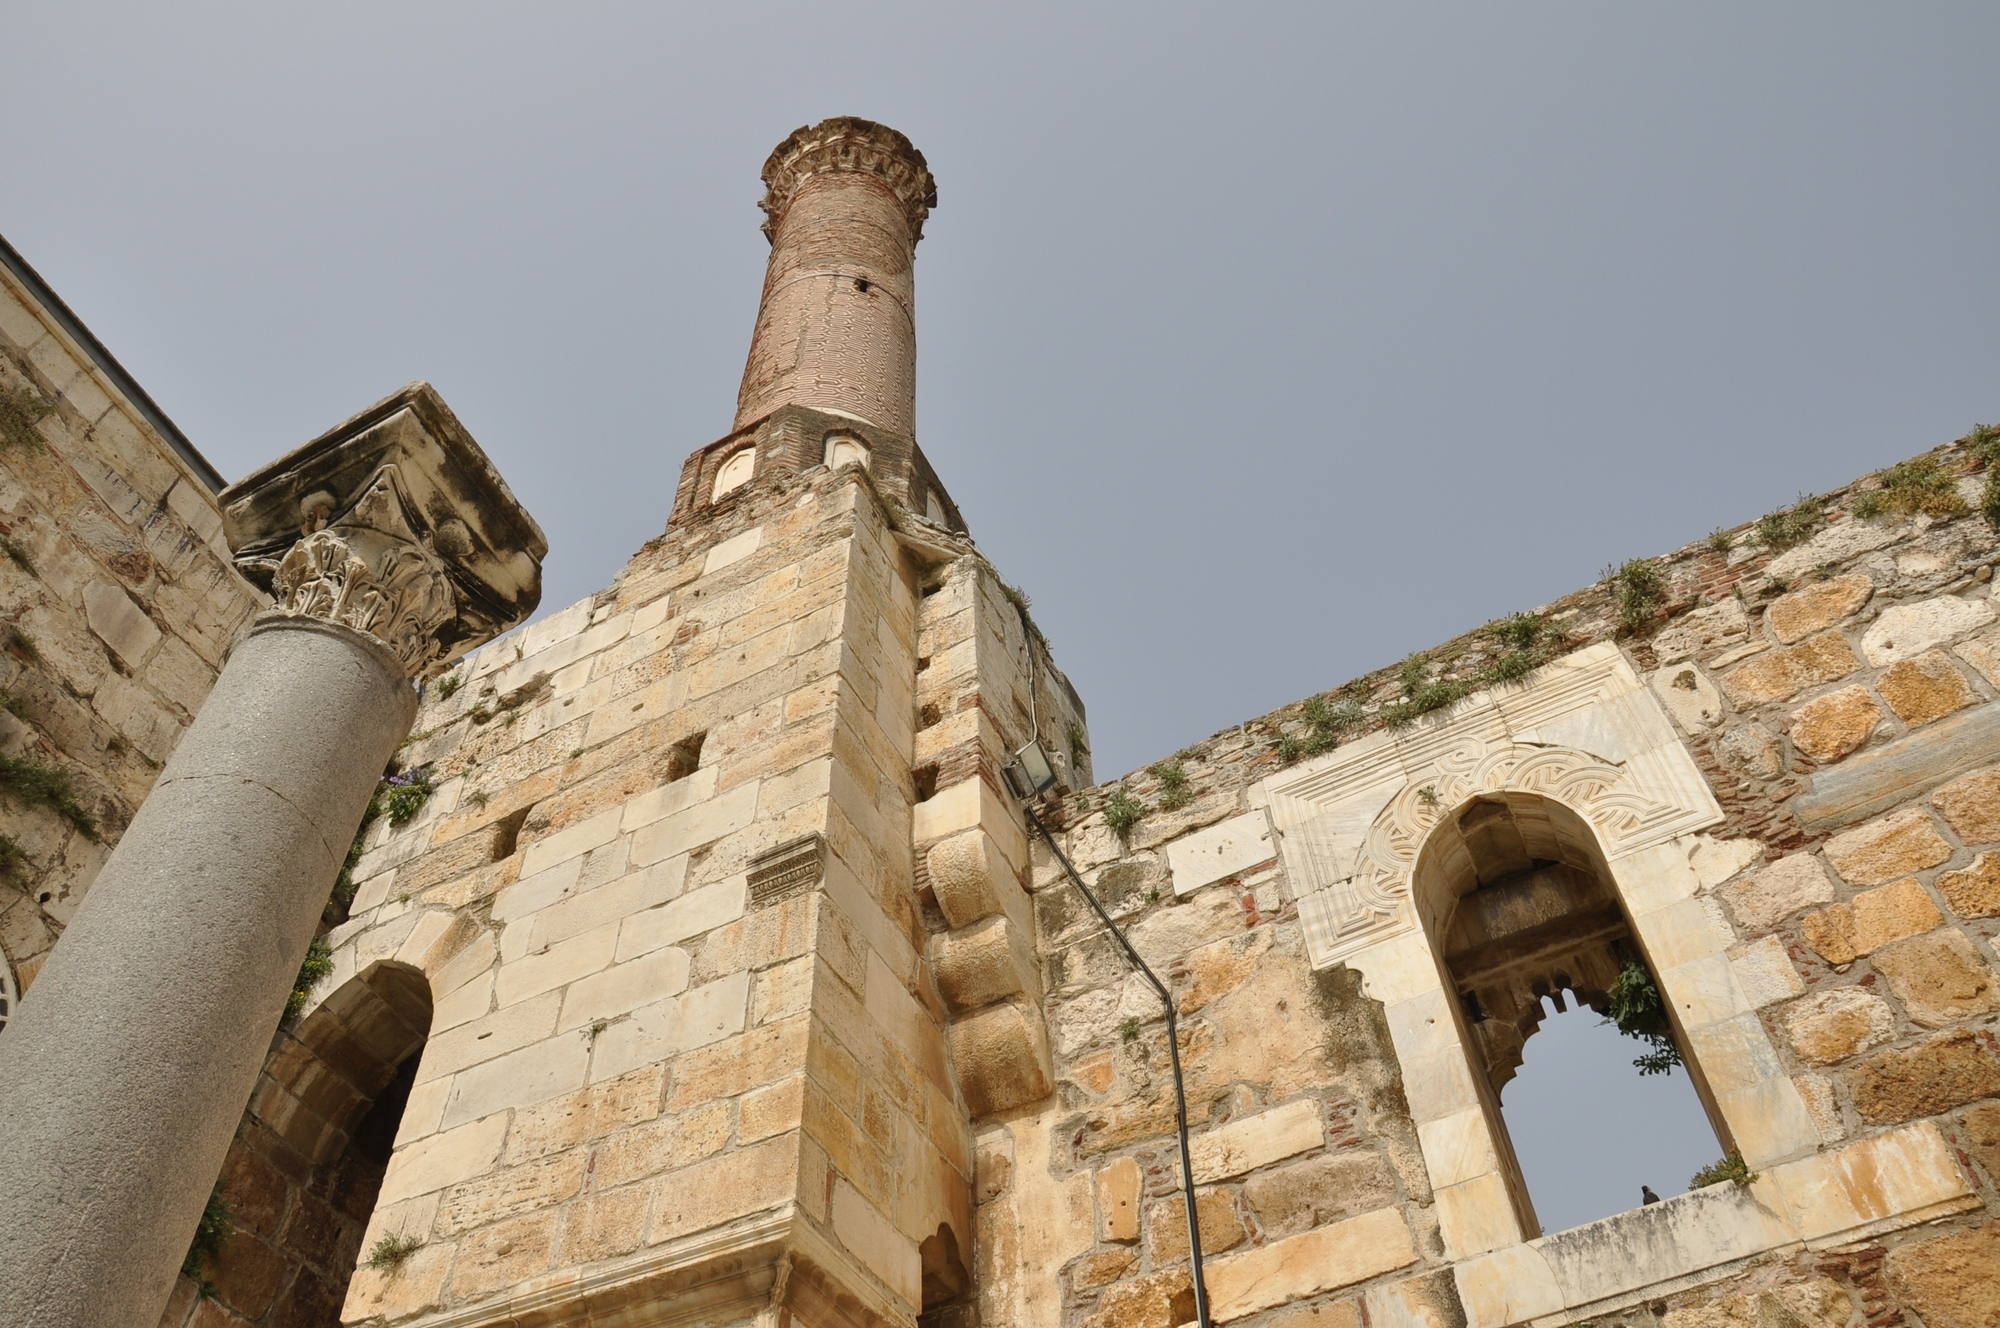 The minaret of İsa Bey Mosque in 2011